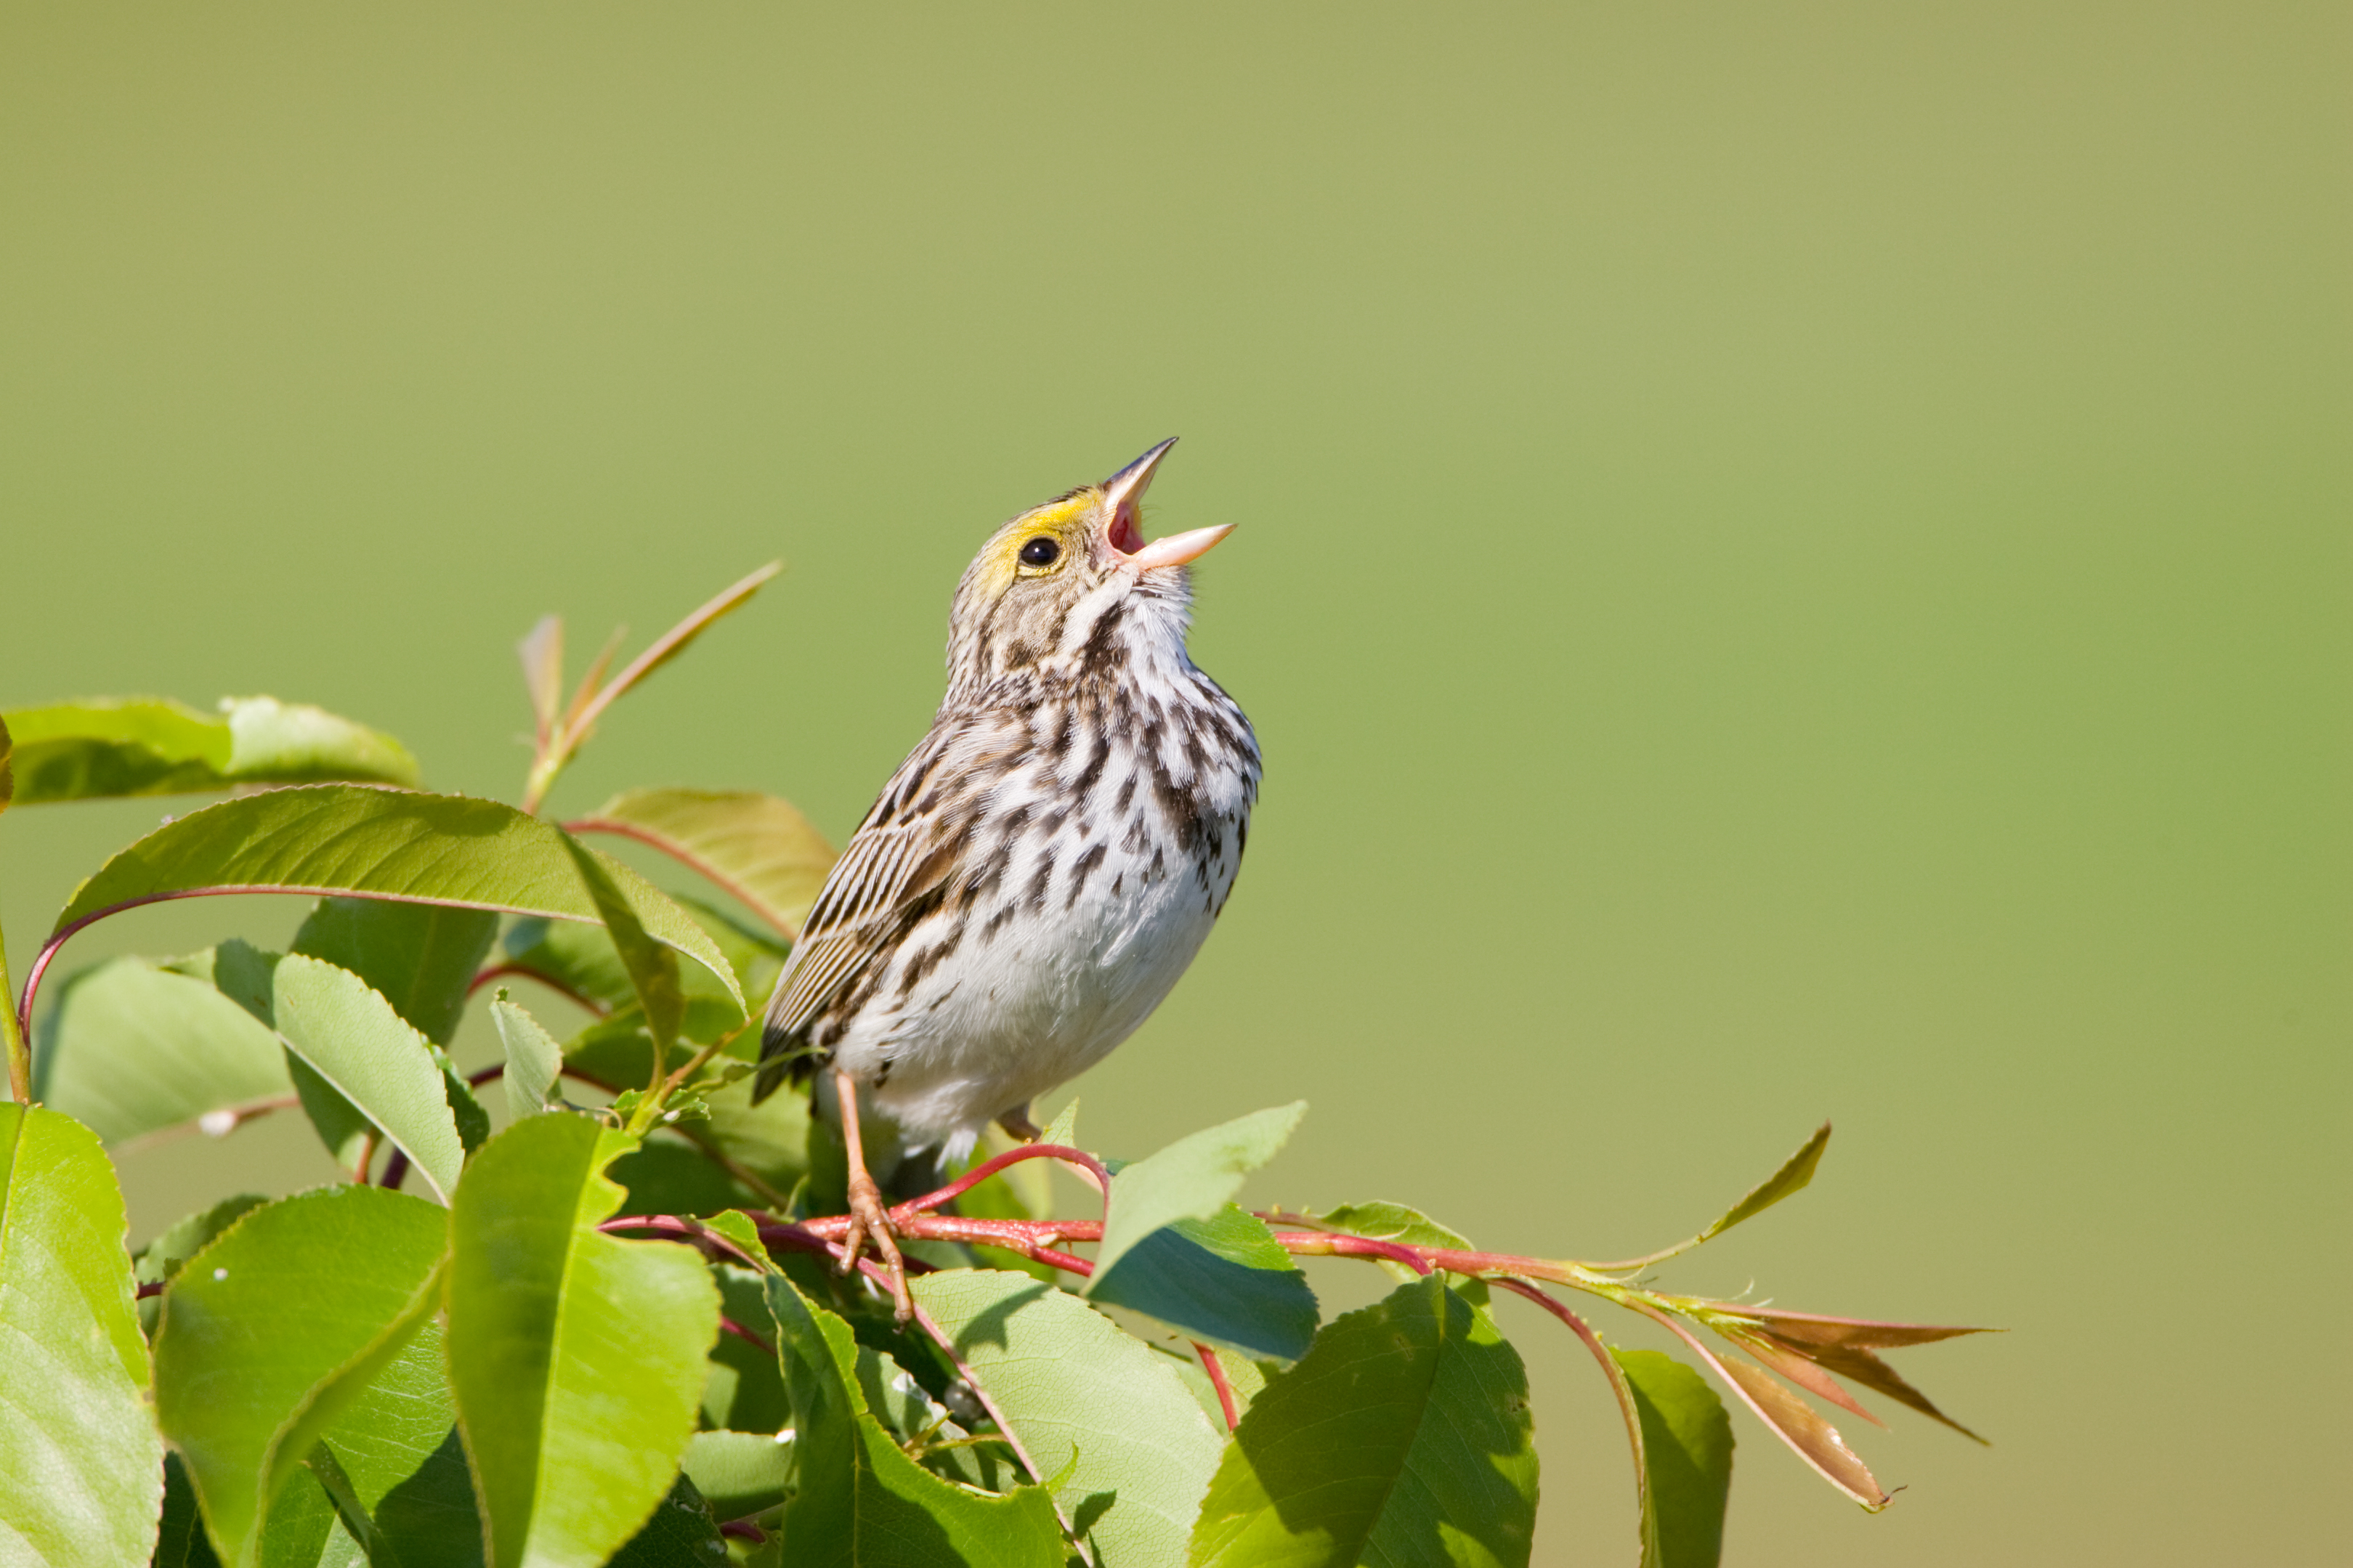 More than a quarter of all birds have disappeared from North America since 1970